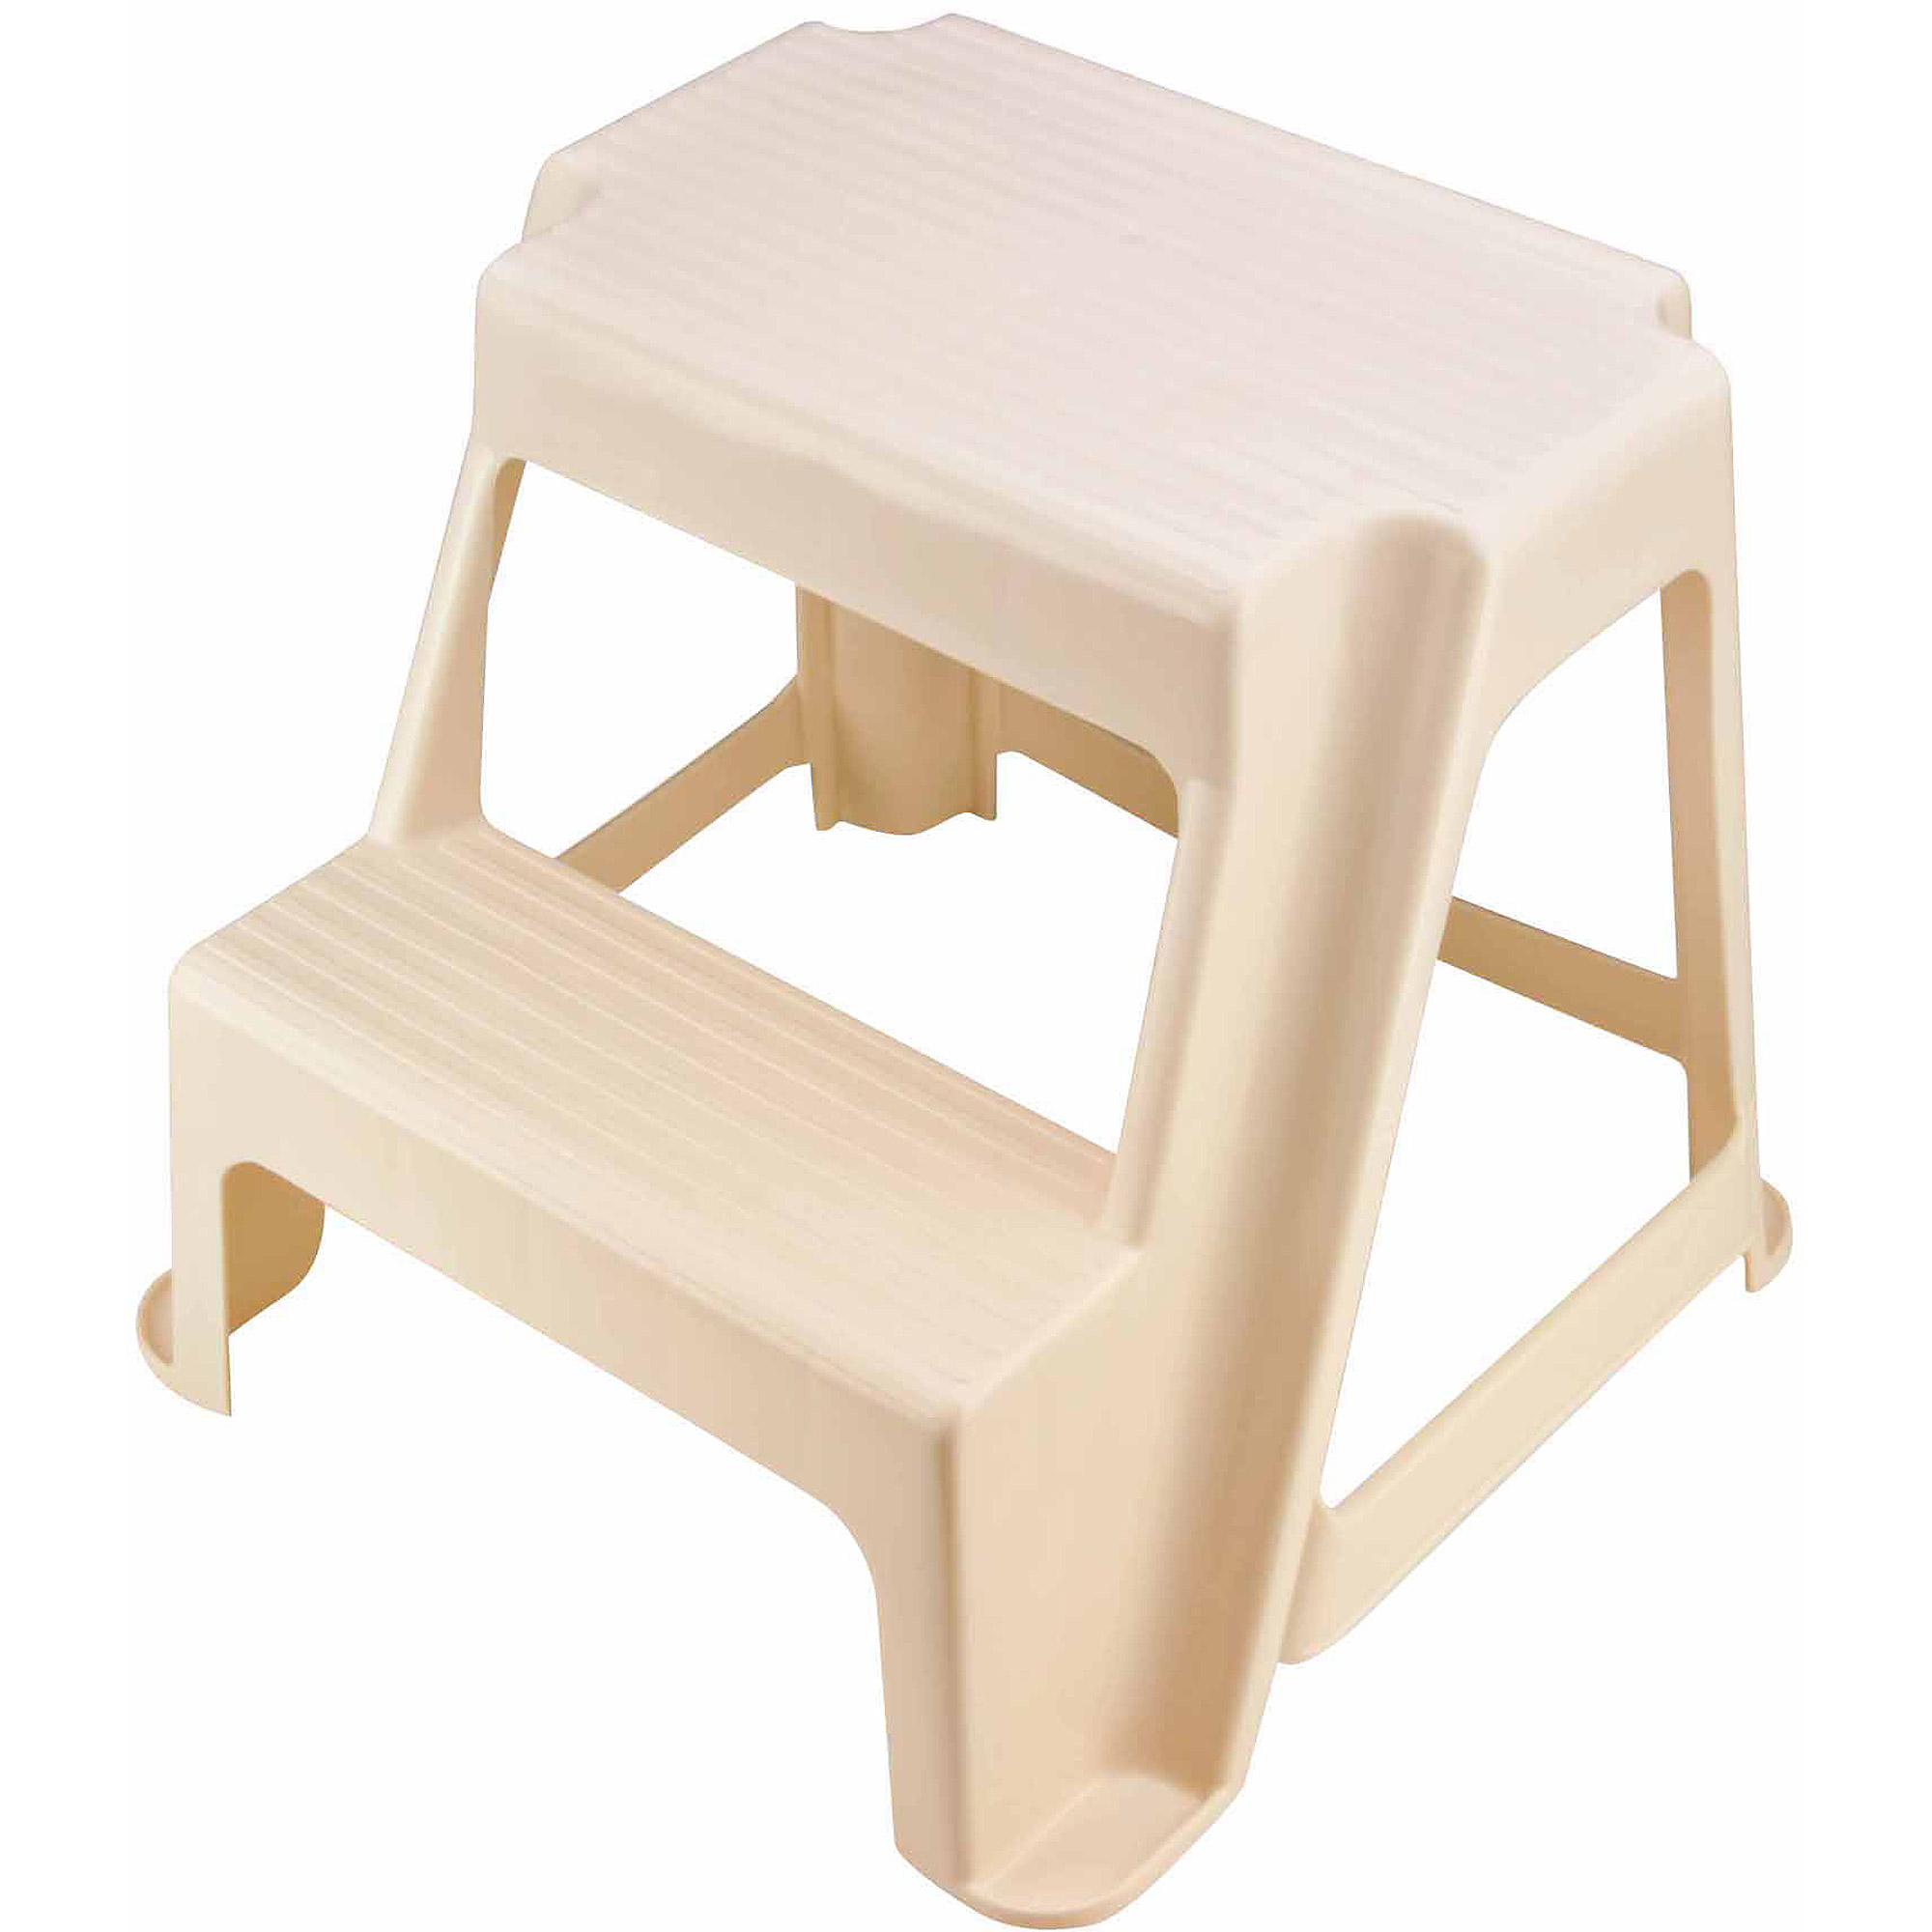 Roughneck Two Step Stool  sc 1 st  Walmart & Roughneck Two Step Stool - Walmart.com islam-shia.org